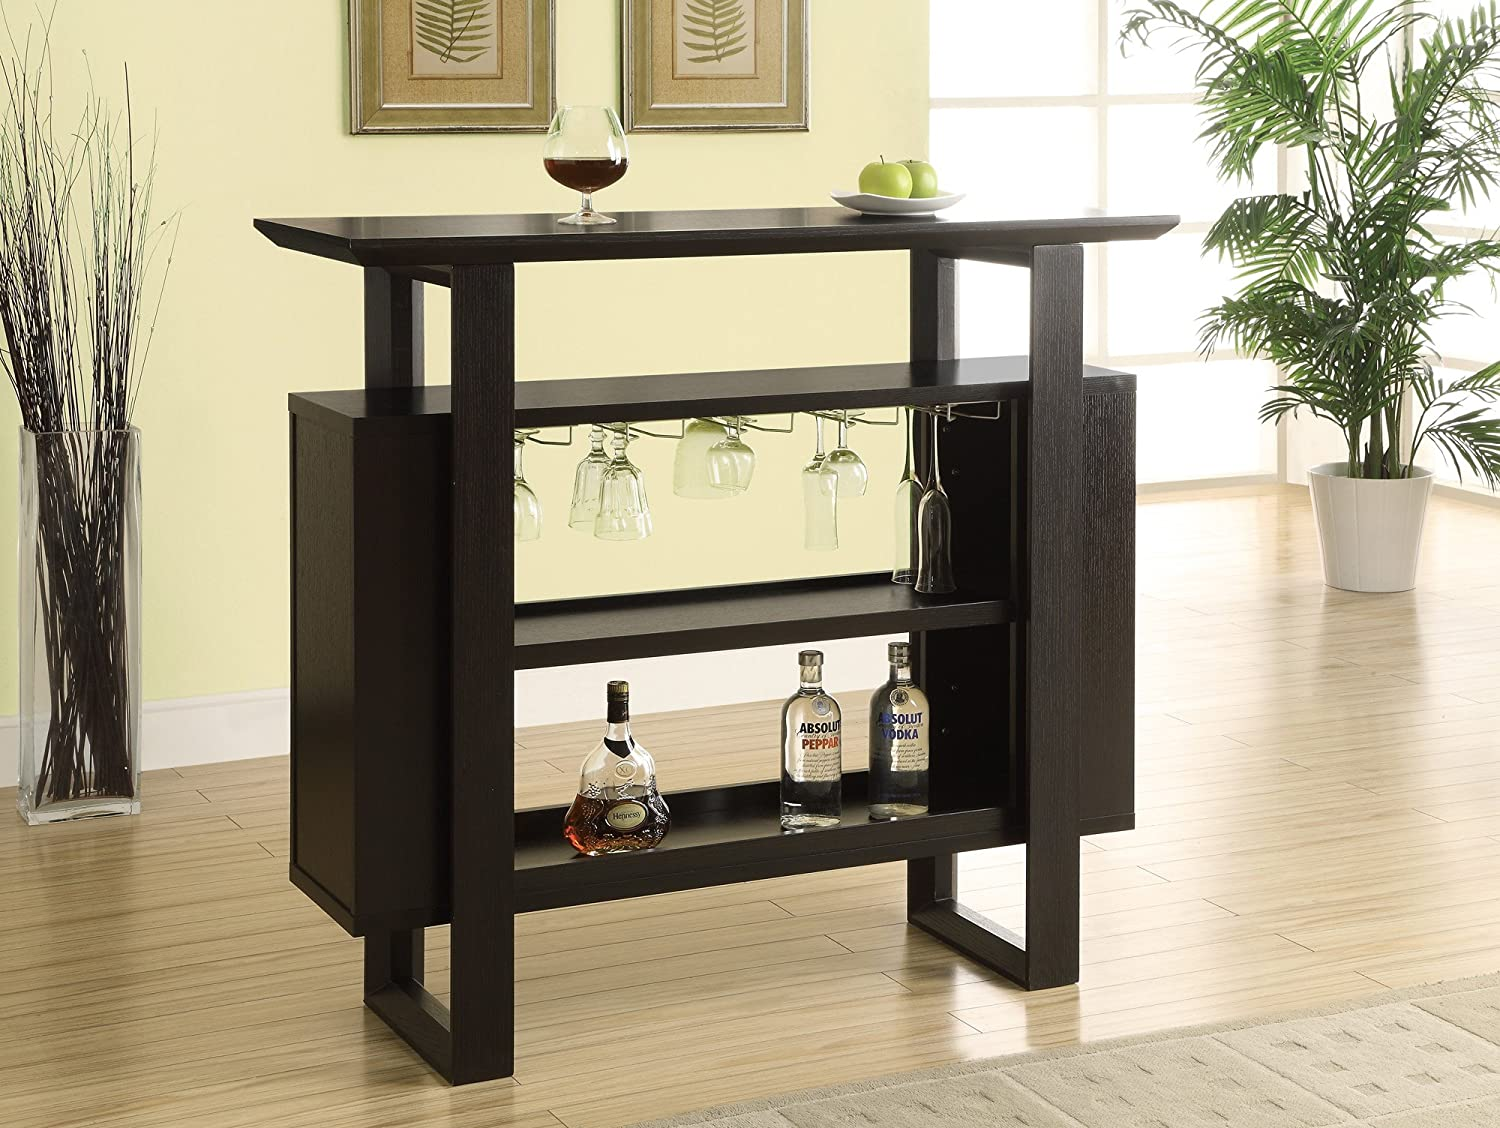 Amazon.com: Monarch Bar Unit with Bottle and Glass Storage, 15 ...